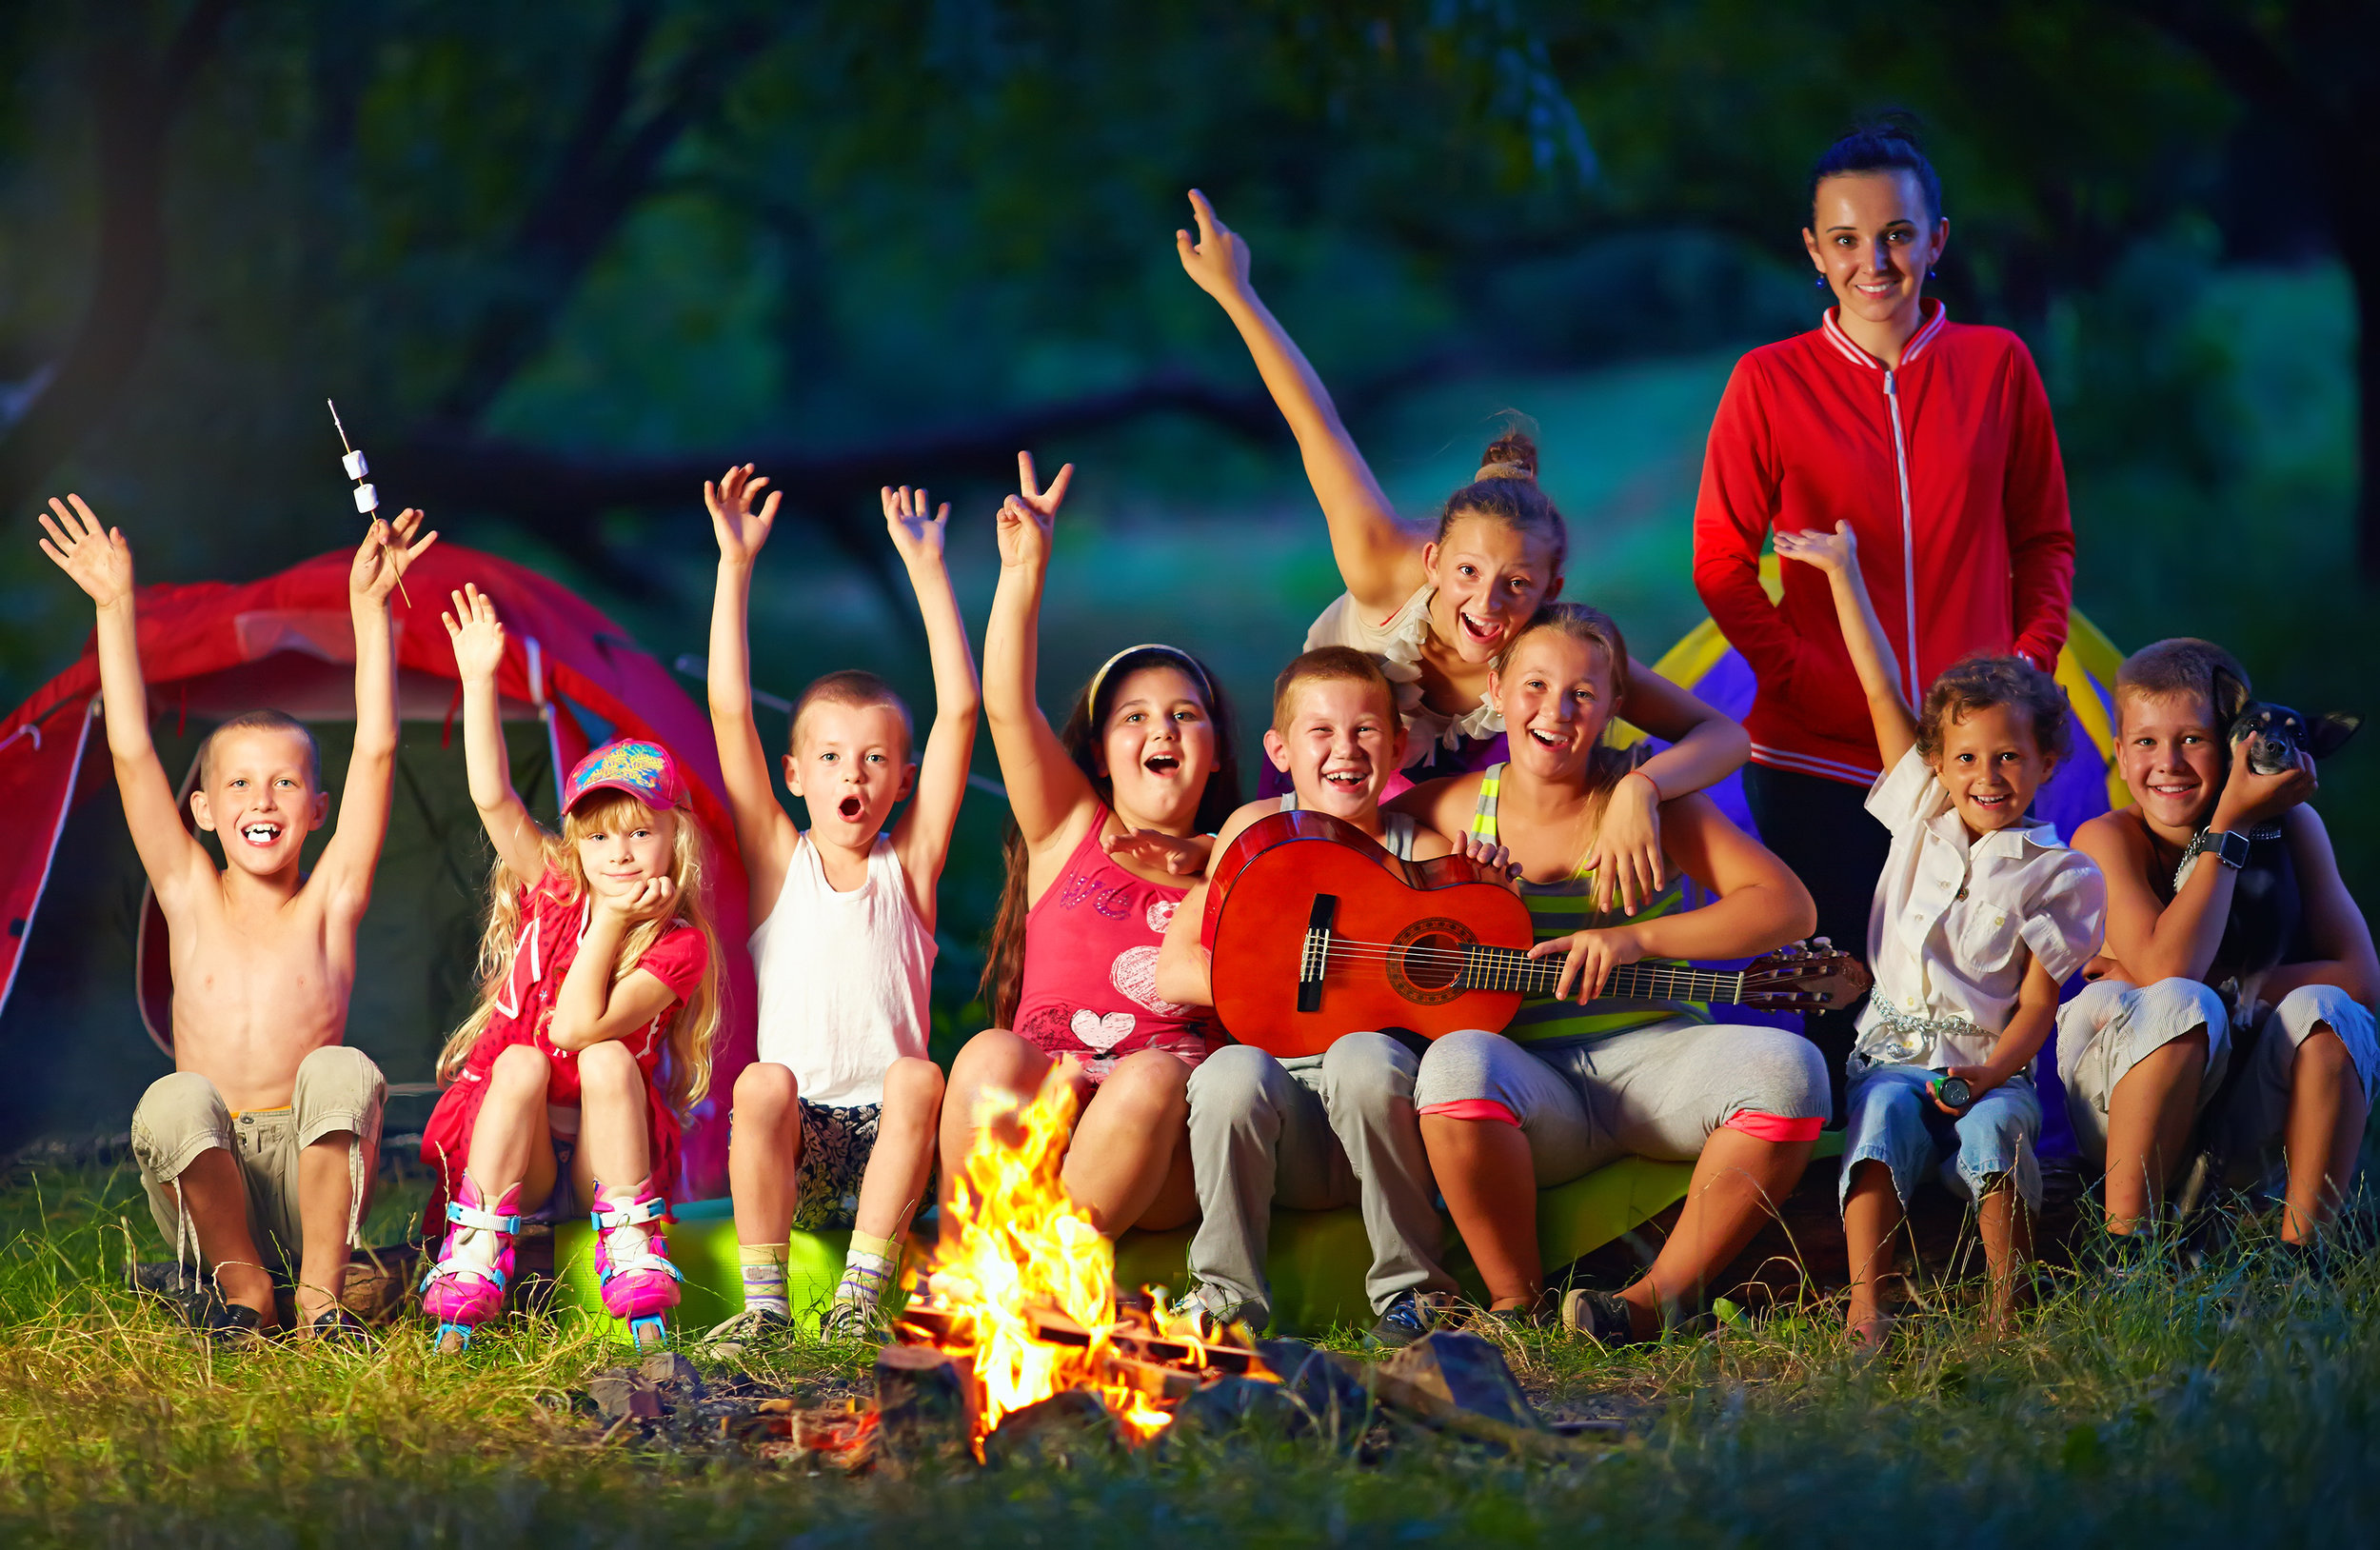 S'more Camping - July 22nd - July 26thIt's off to camping we go! Gather around our campfire for story time and learn about nature and of course make s'mores! We will have a scavenger hunt, arts and crafts , and s'much more!